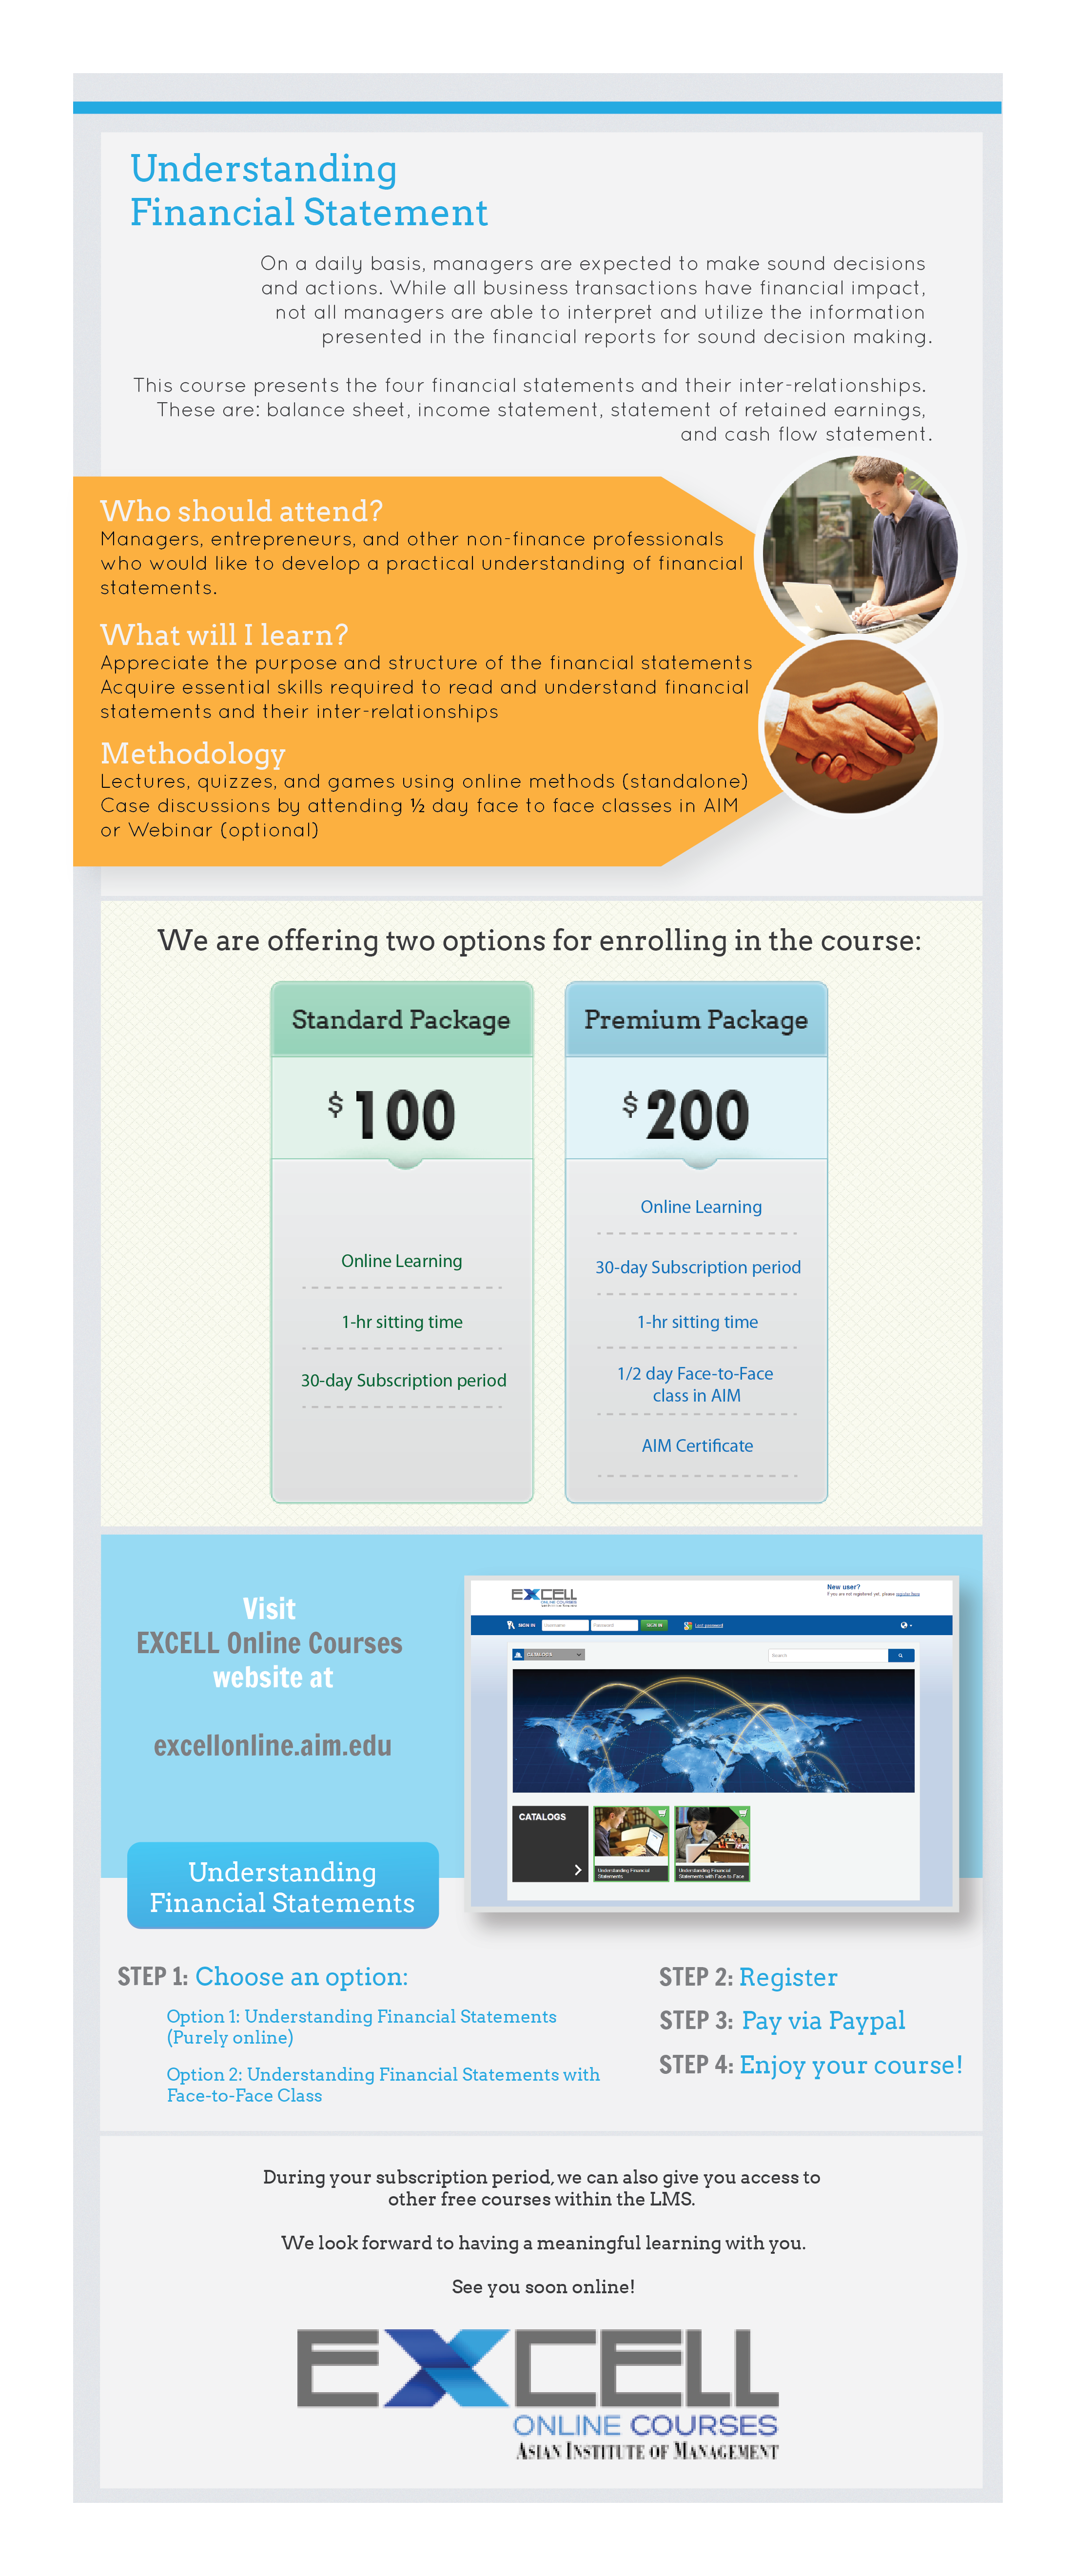 Excell Online Courses Is Now Offering Understanding Financial